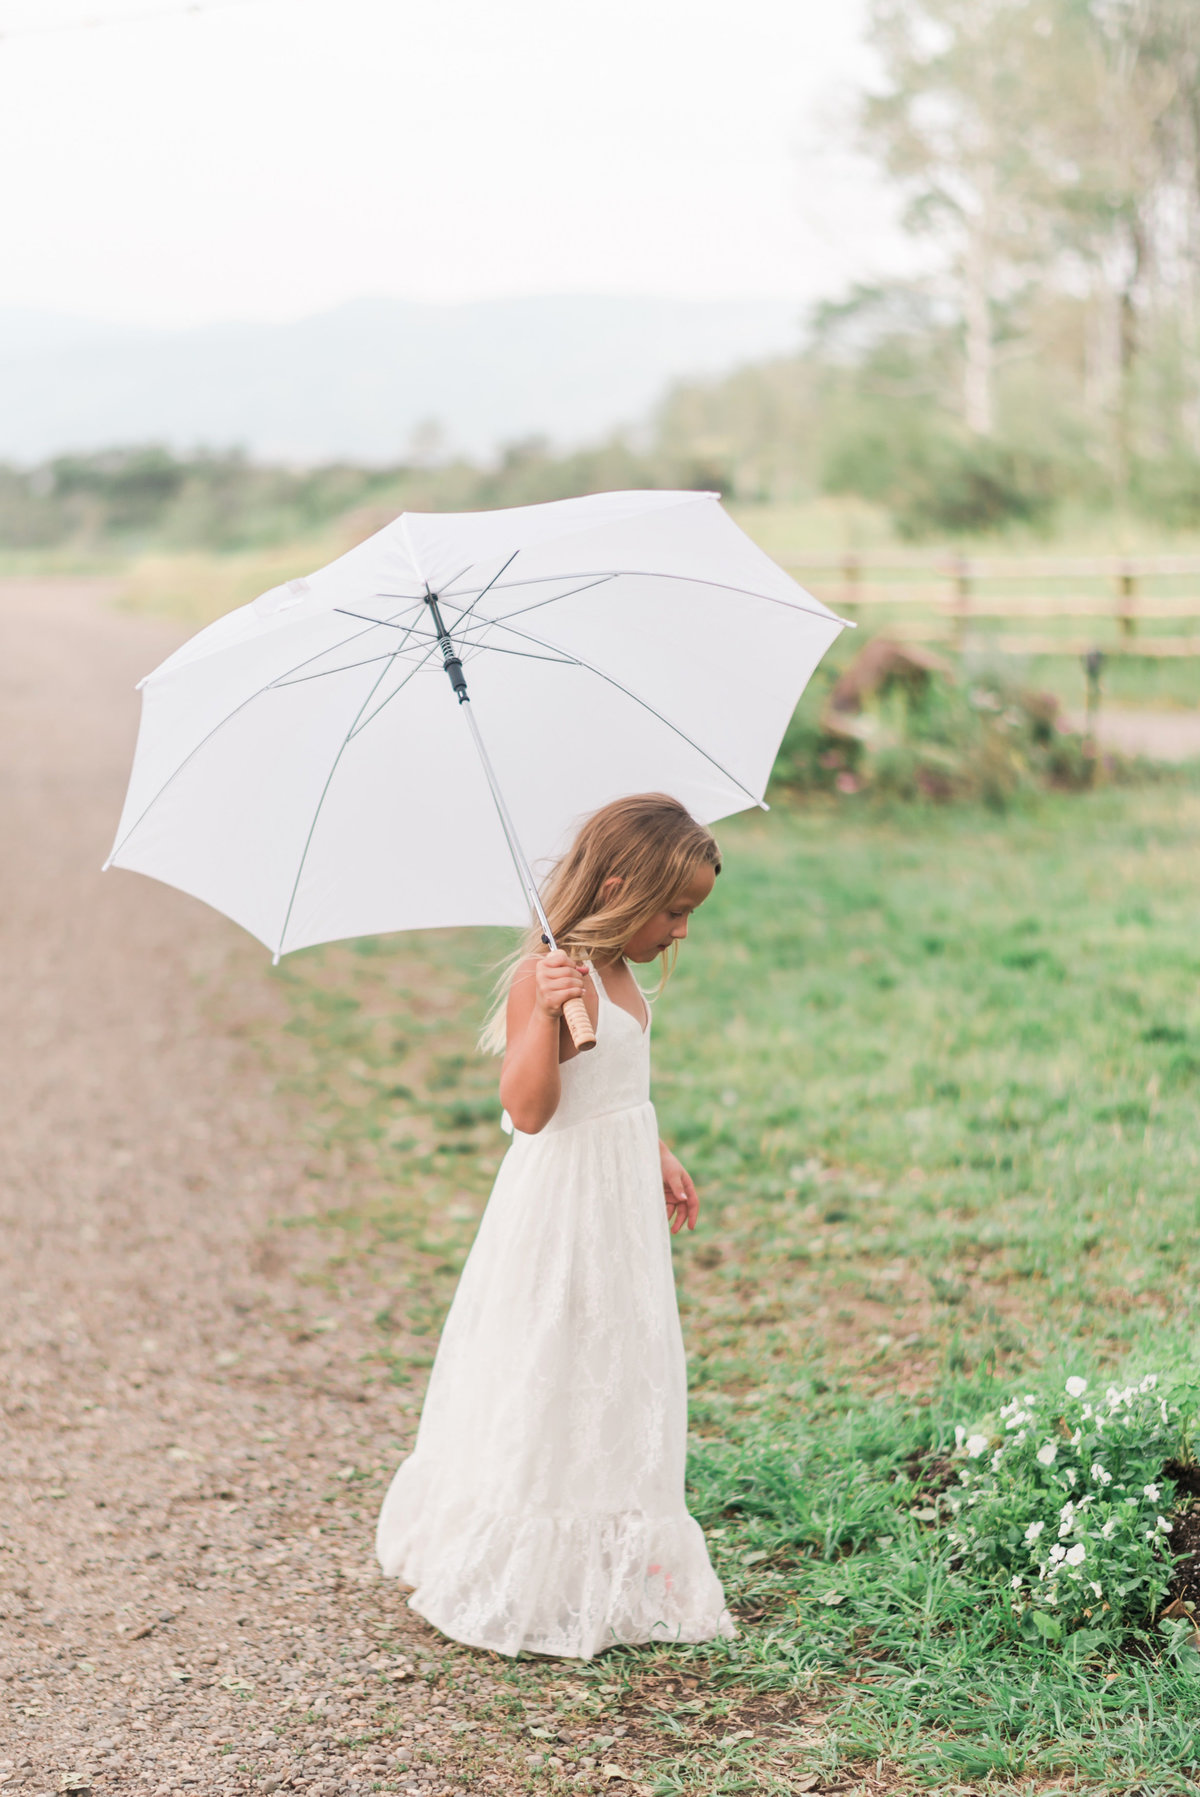 Kari_Ryan_Anderson_Colorado_Outdoor_Chapel_Wedding_Valorie_Darling_Photography - 85 of 126